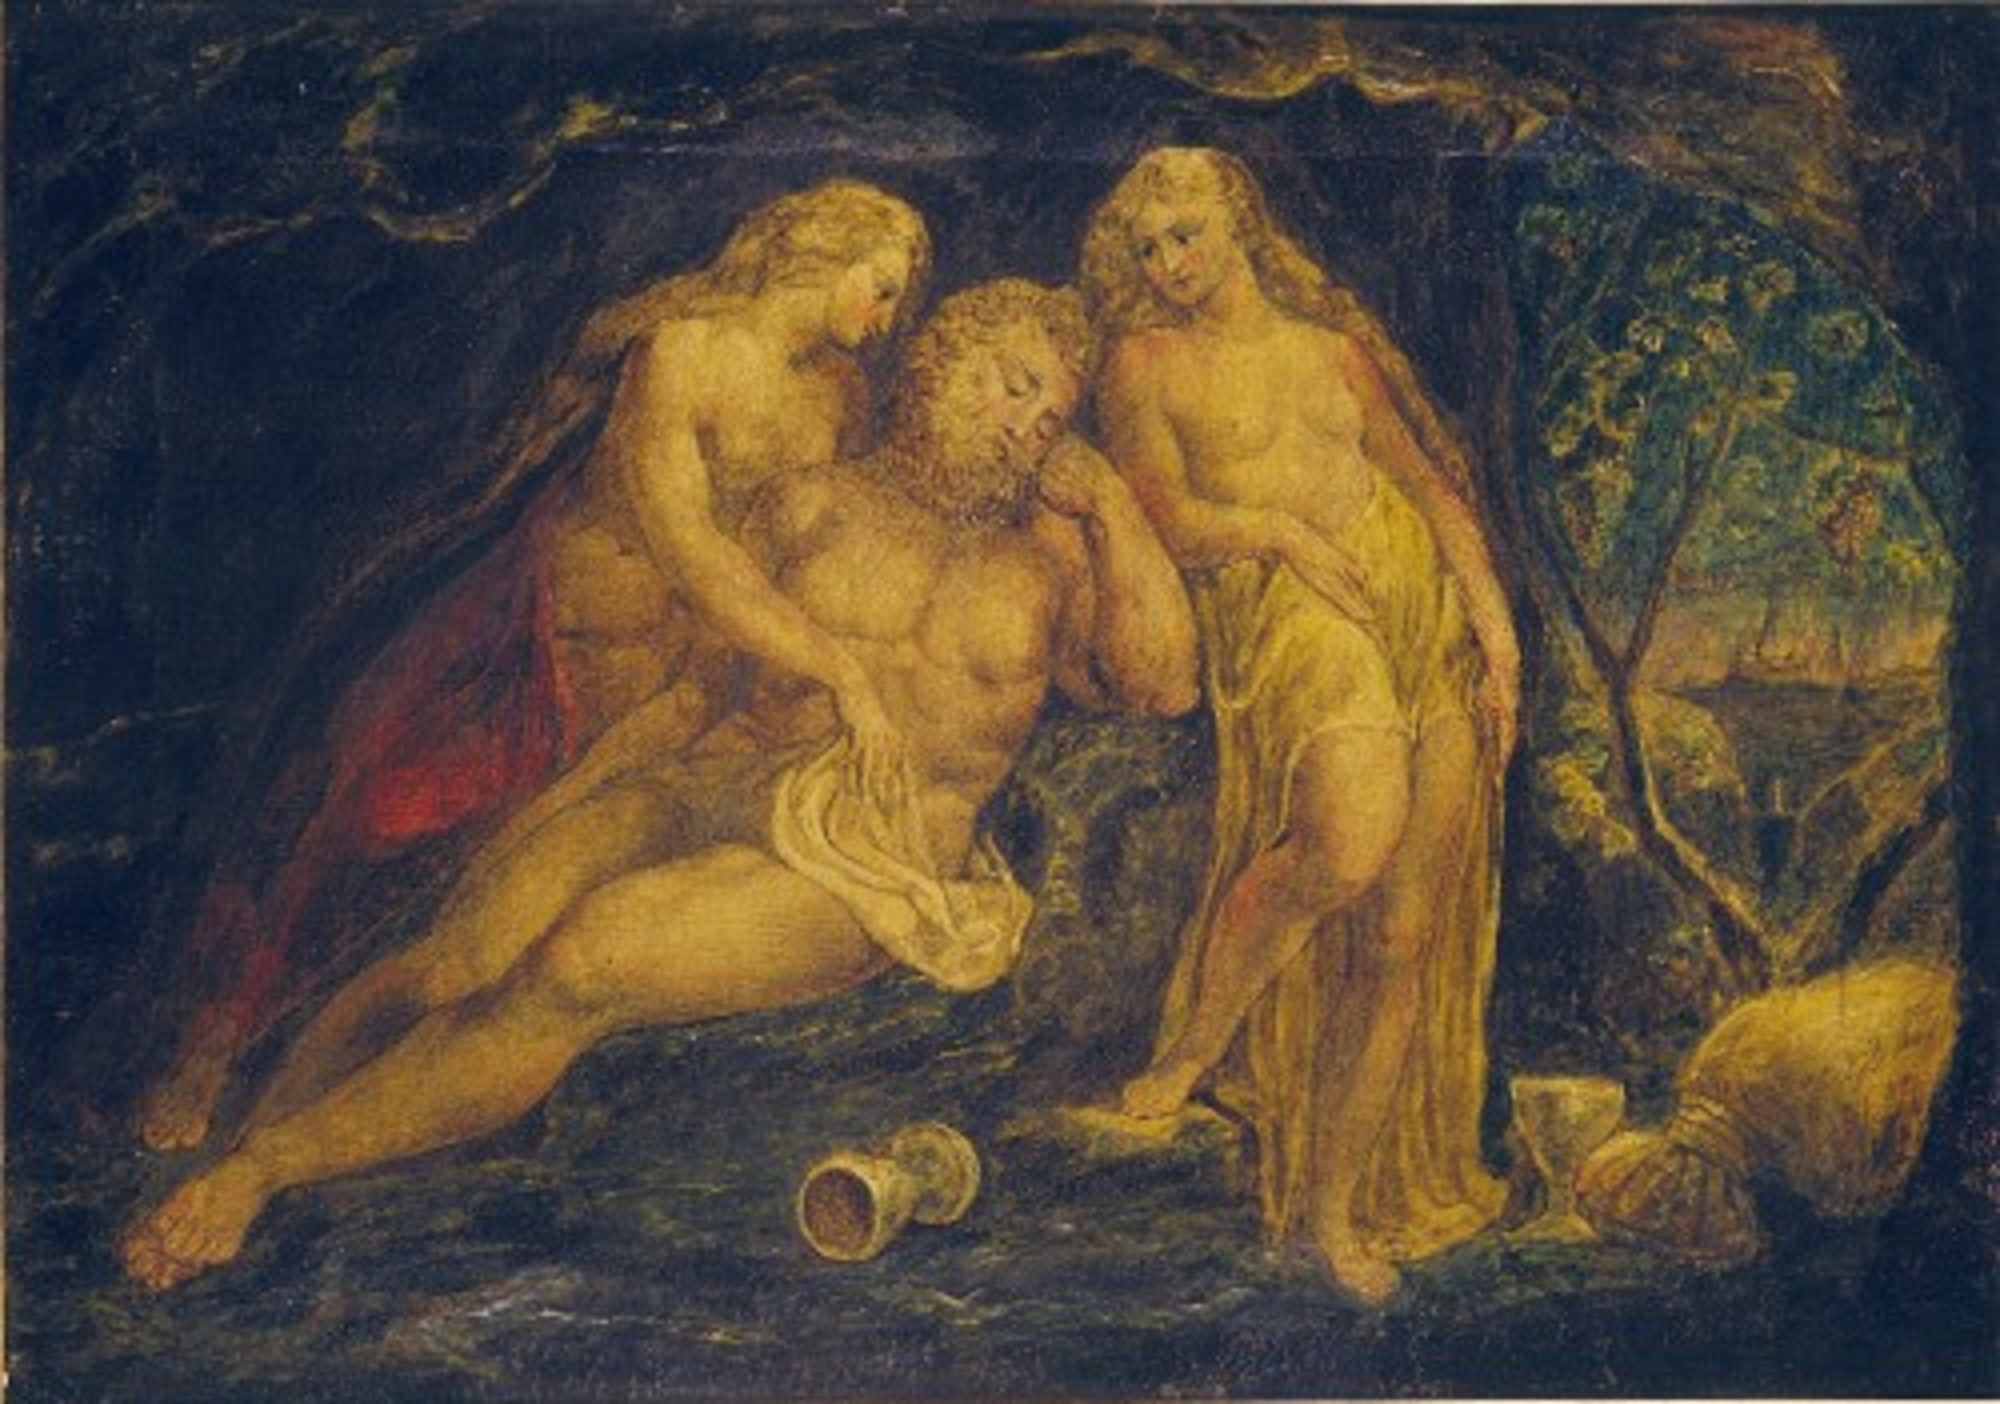 William_Blake_Lot_and_His_Daughters_Butlin_381.jpg